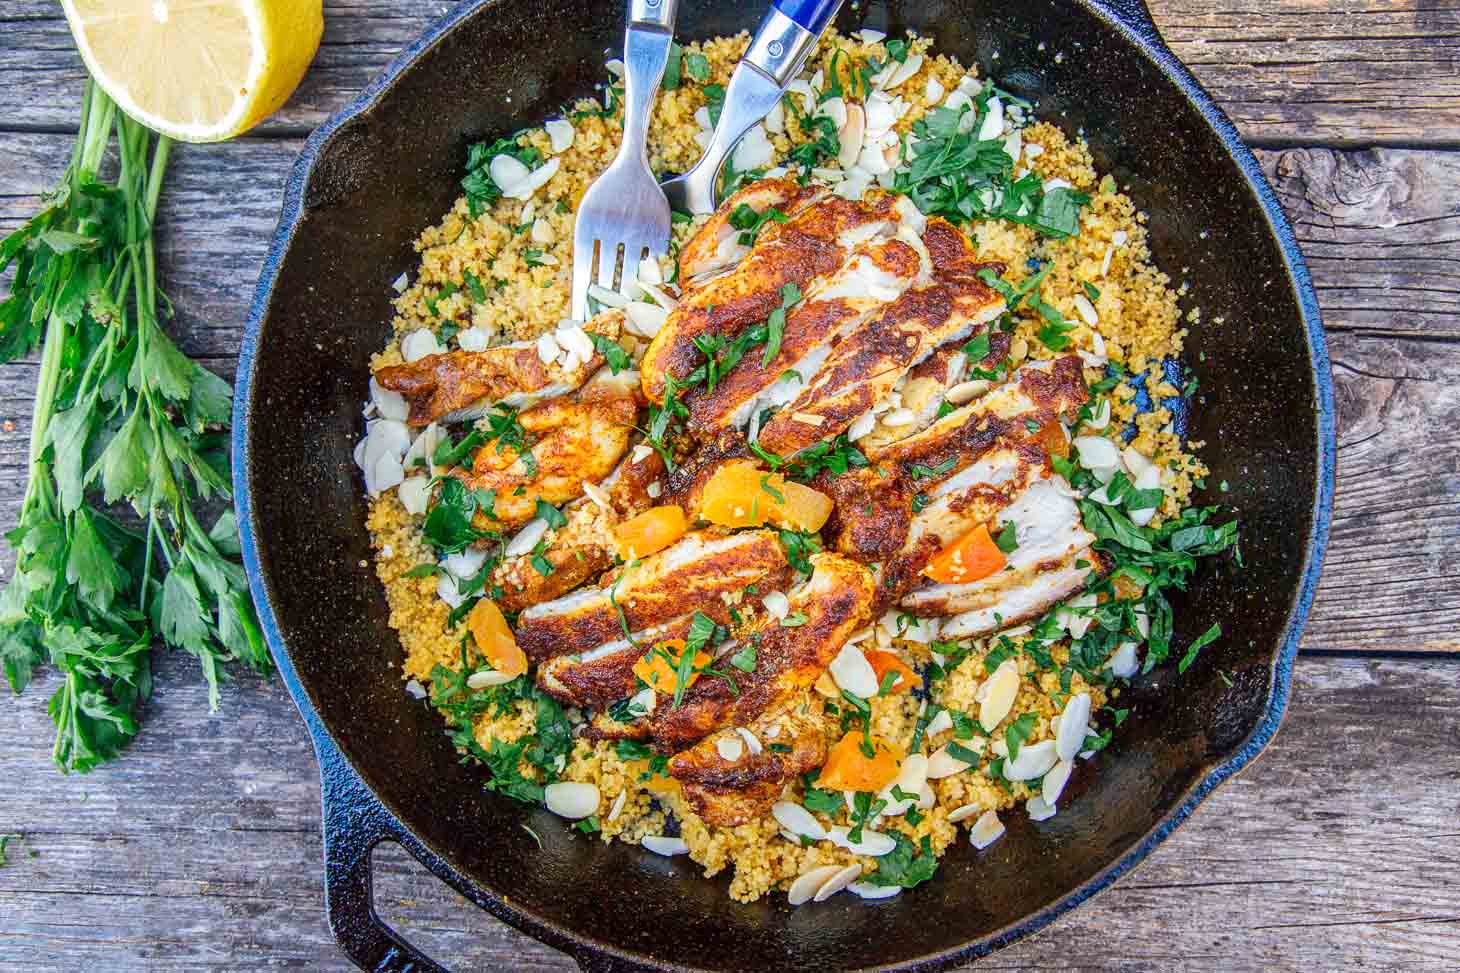 Chicken on a bed of couscous in a cast iron skillet